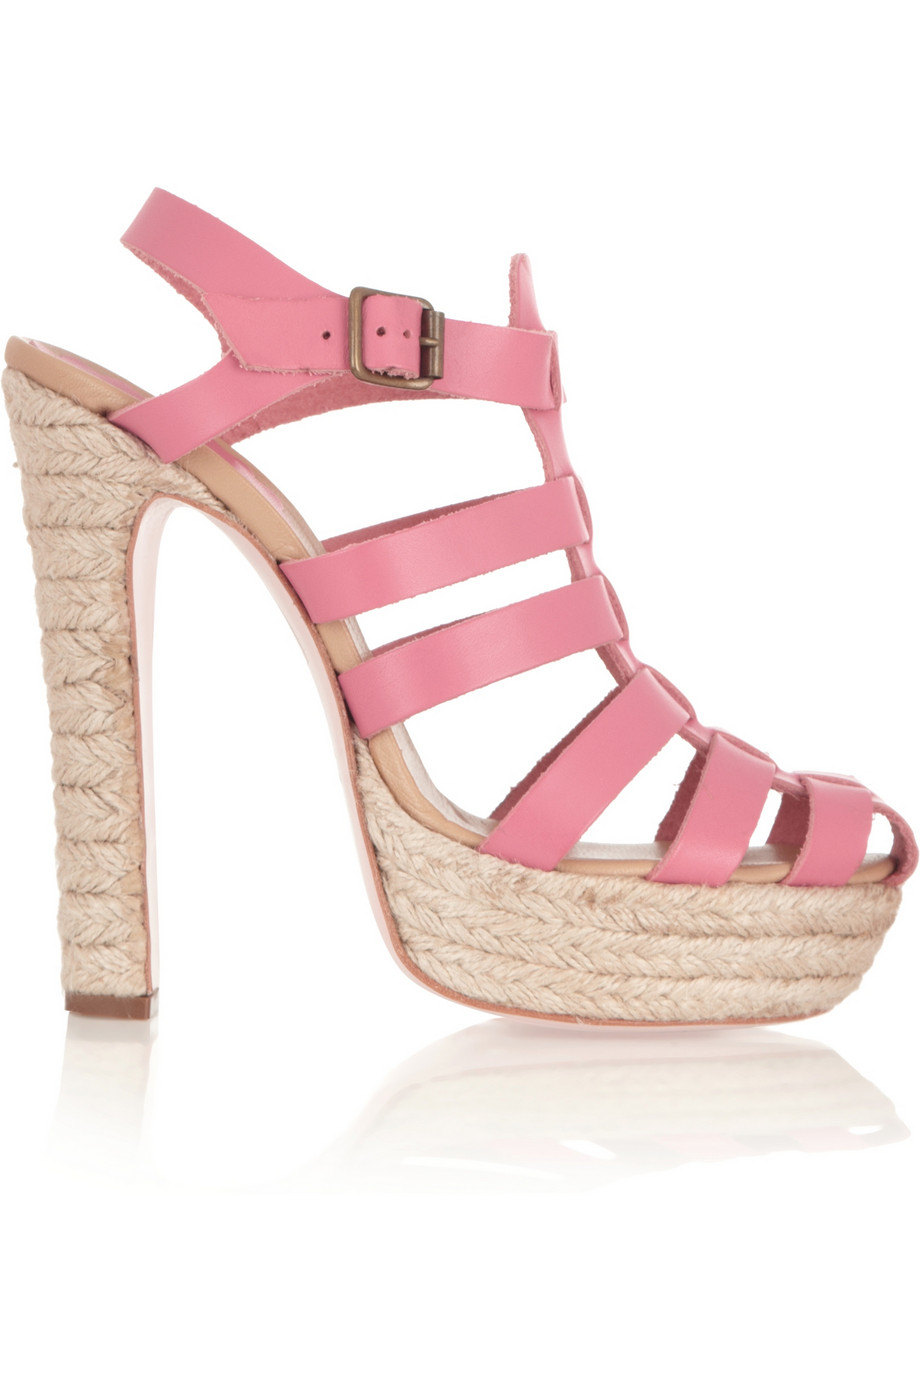 Red Valentino Leather Platform Sandals In Pink Lyst